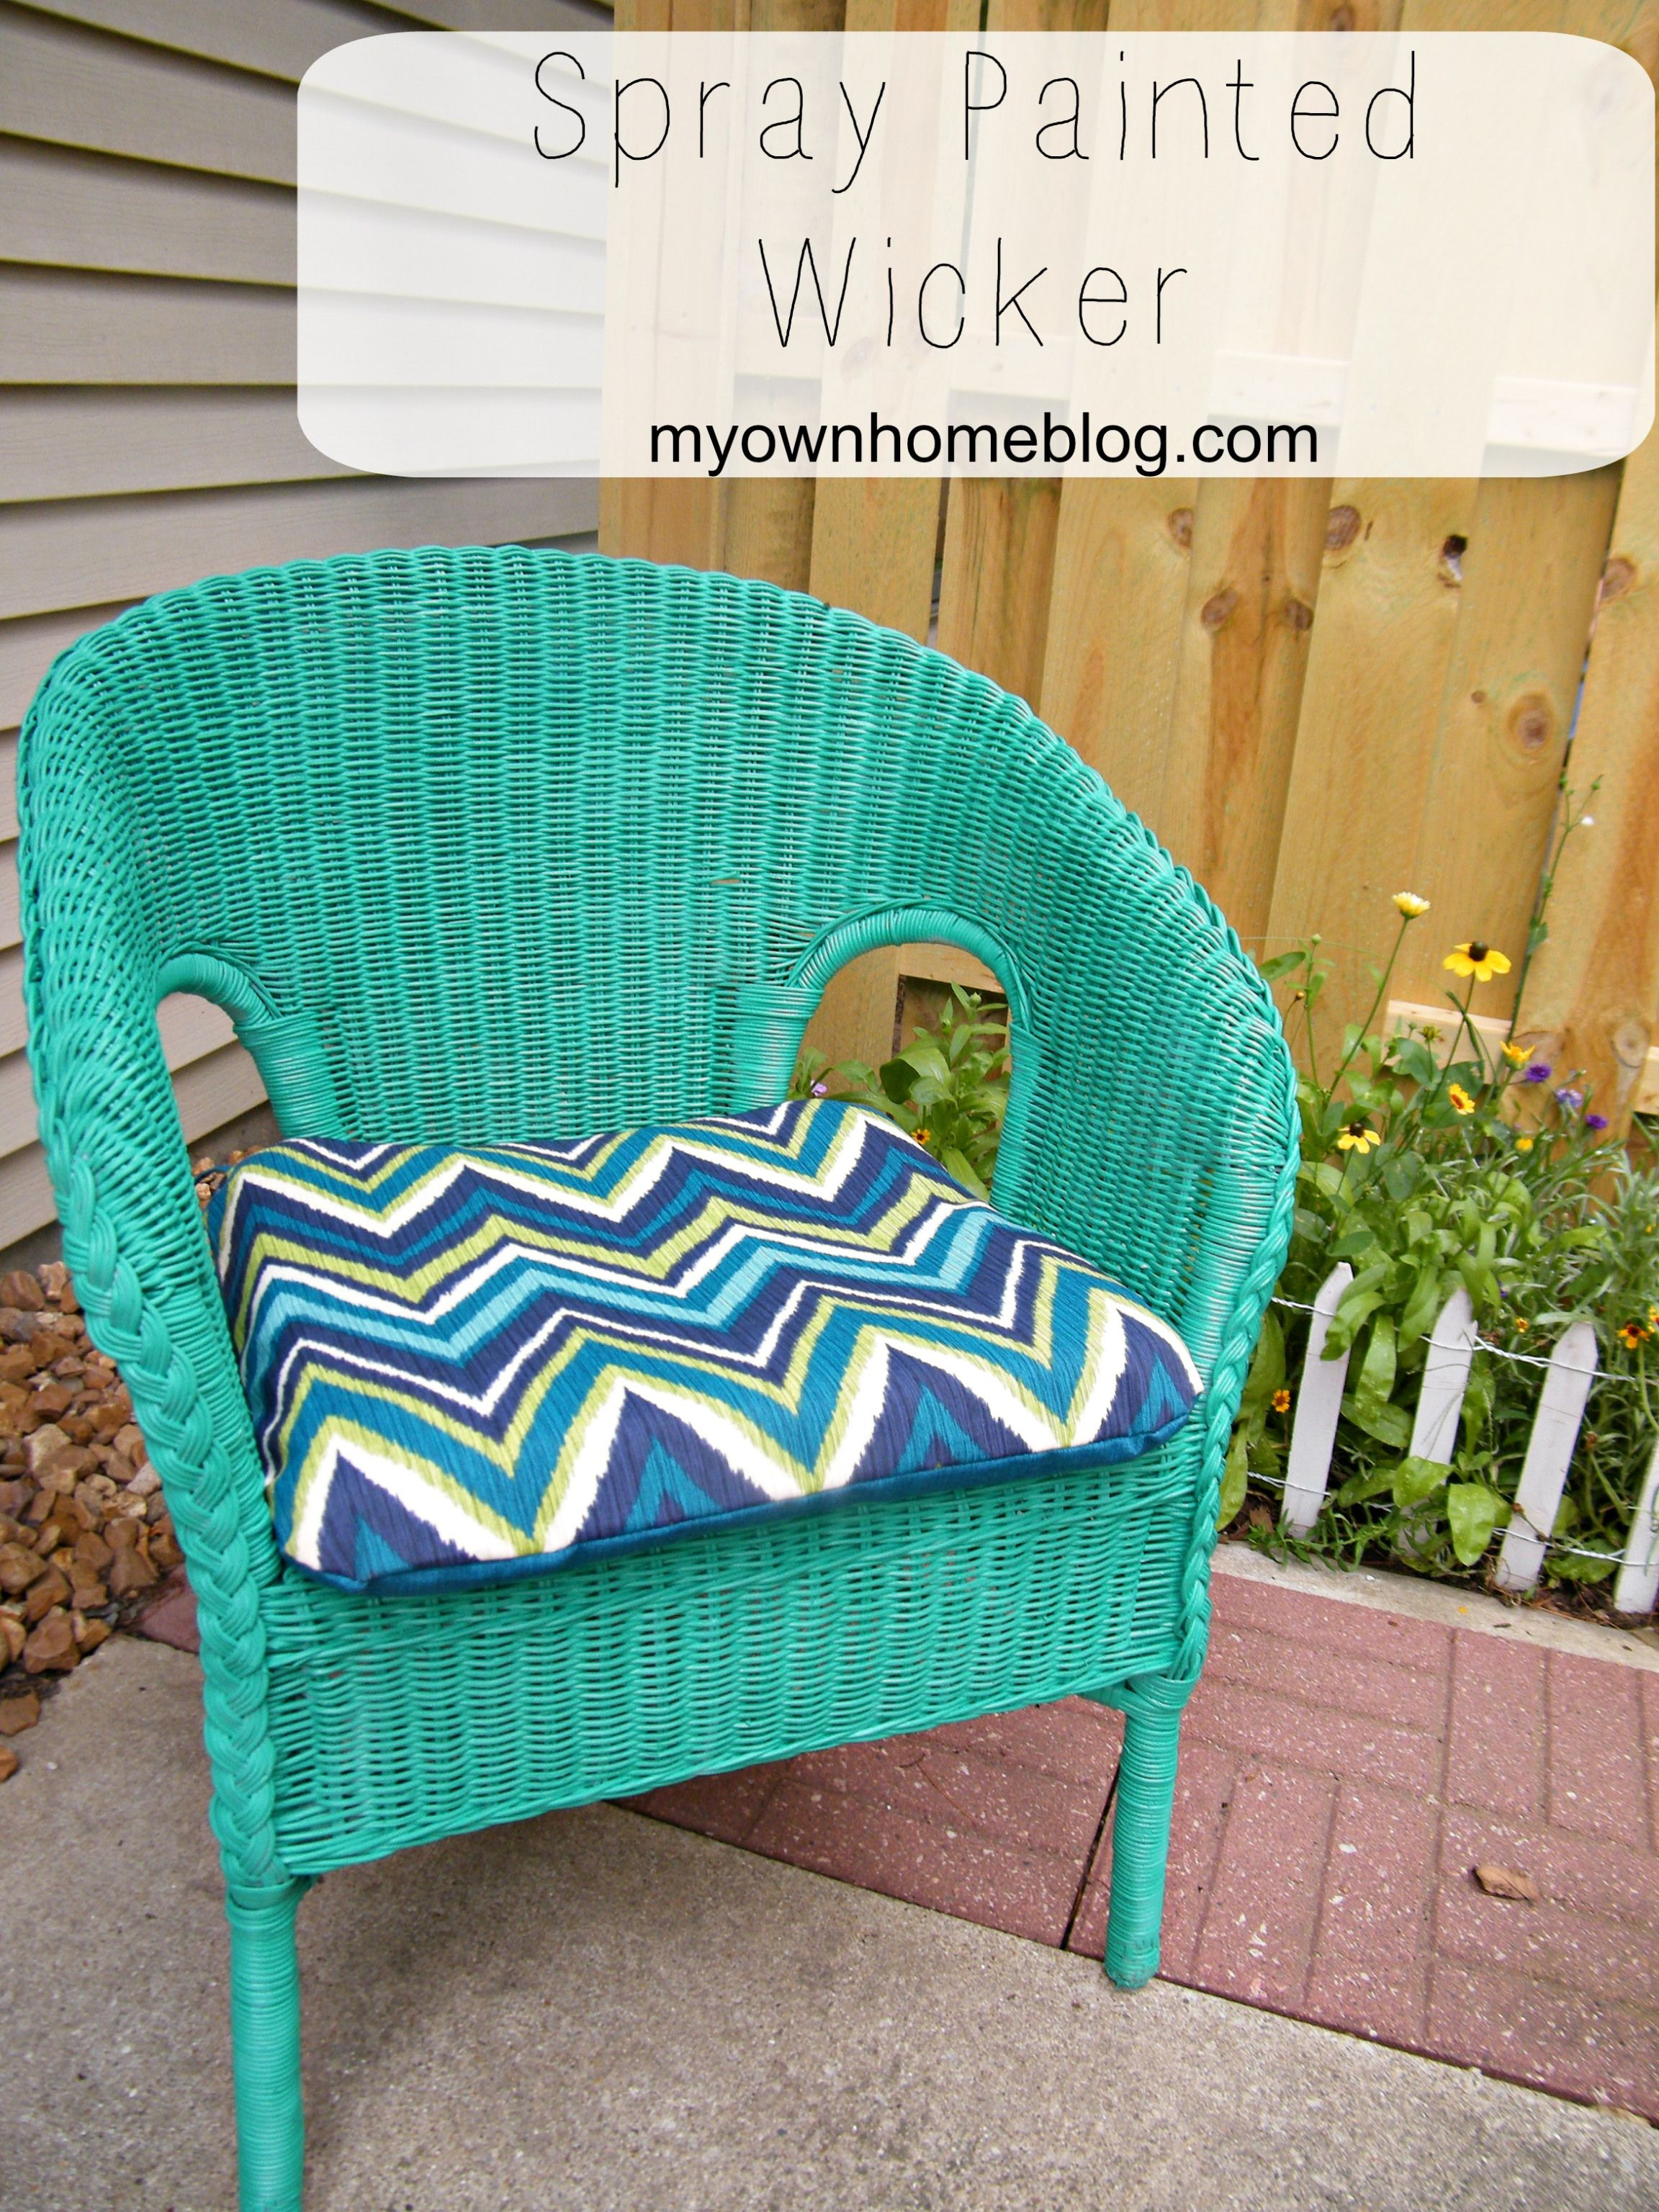 Beau Spray Painted $5 Wicker Chair | Spray Paint Wicker, Painted Wicker And Wicker  Chairs.